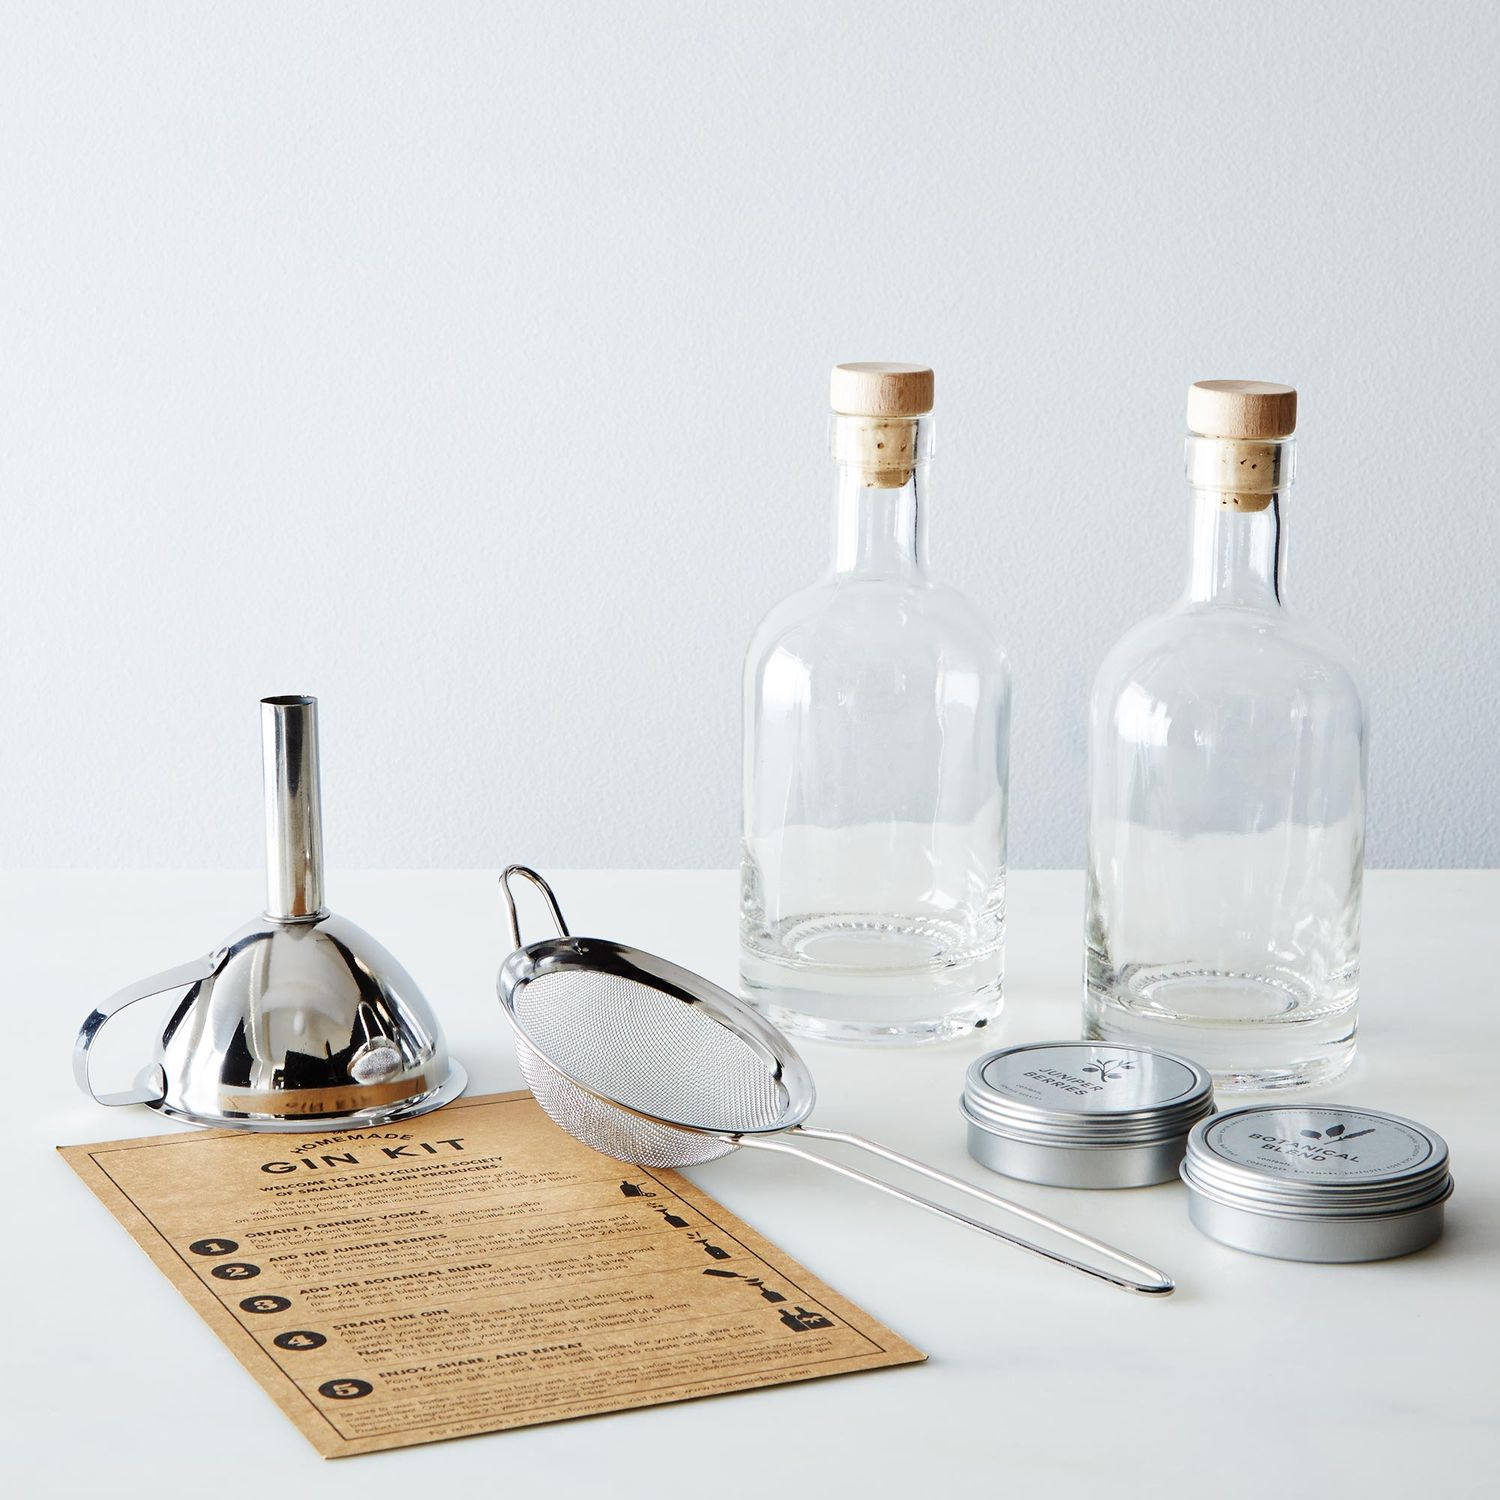 The Homemade Gin Kit on Food52